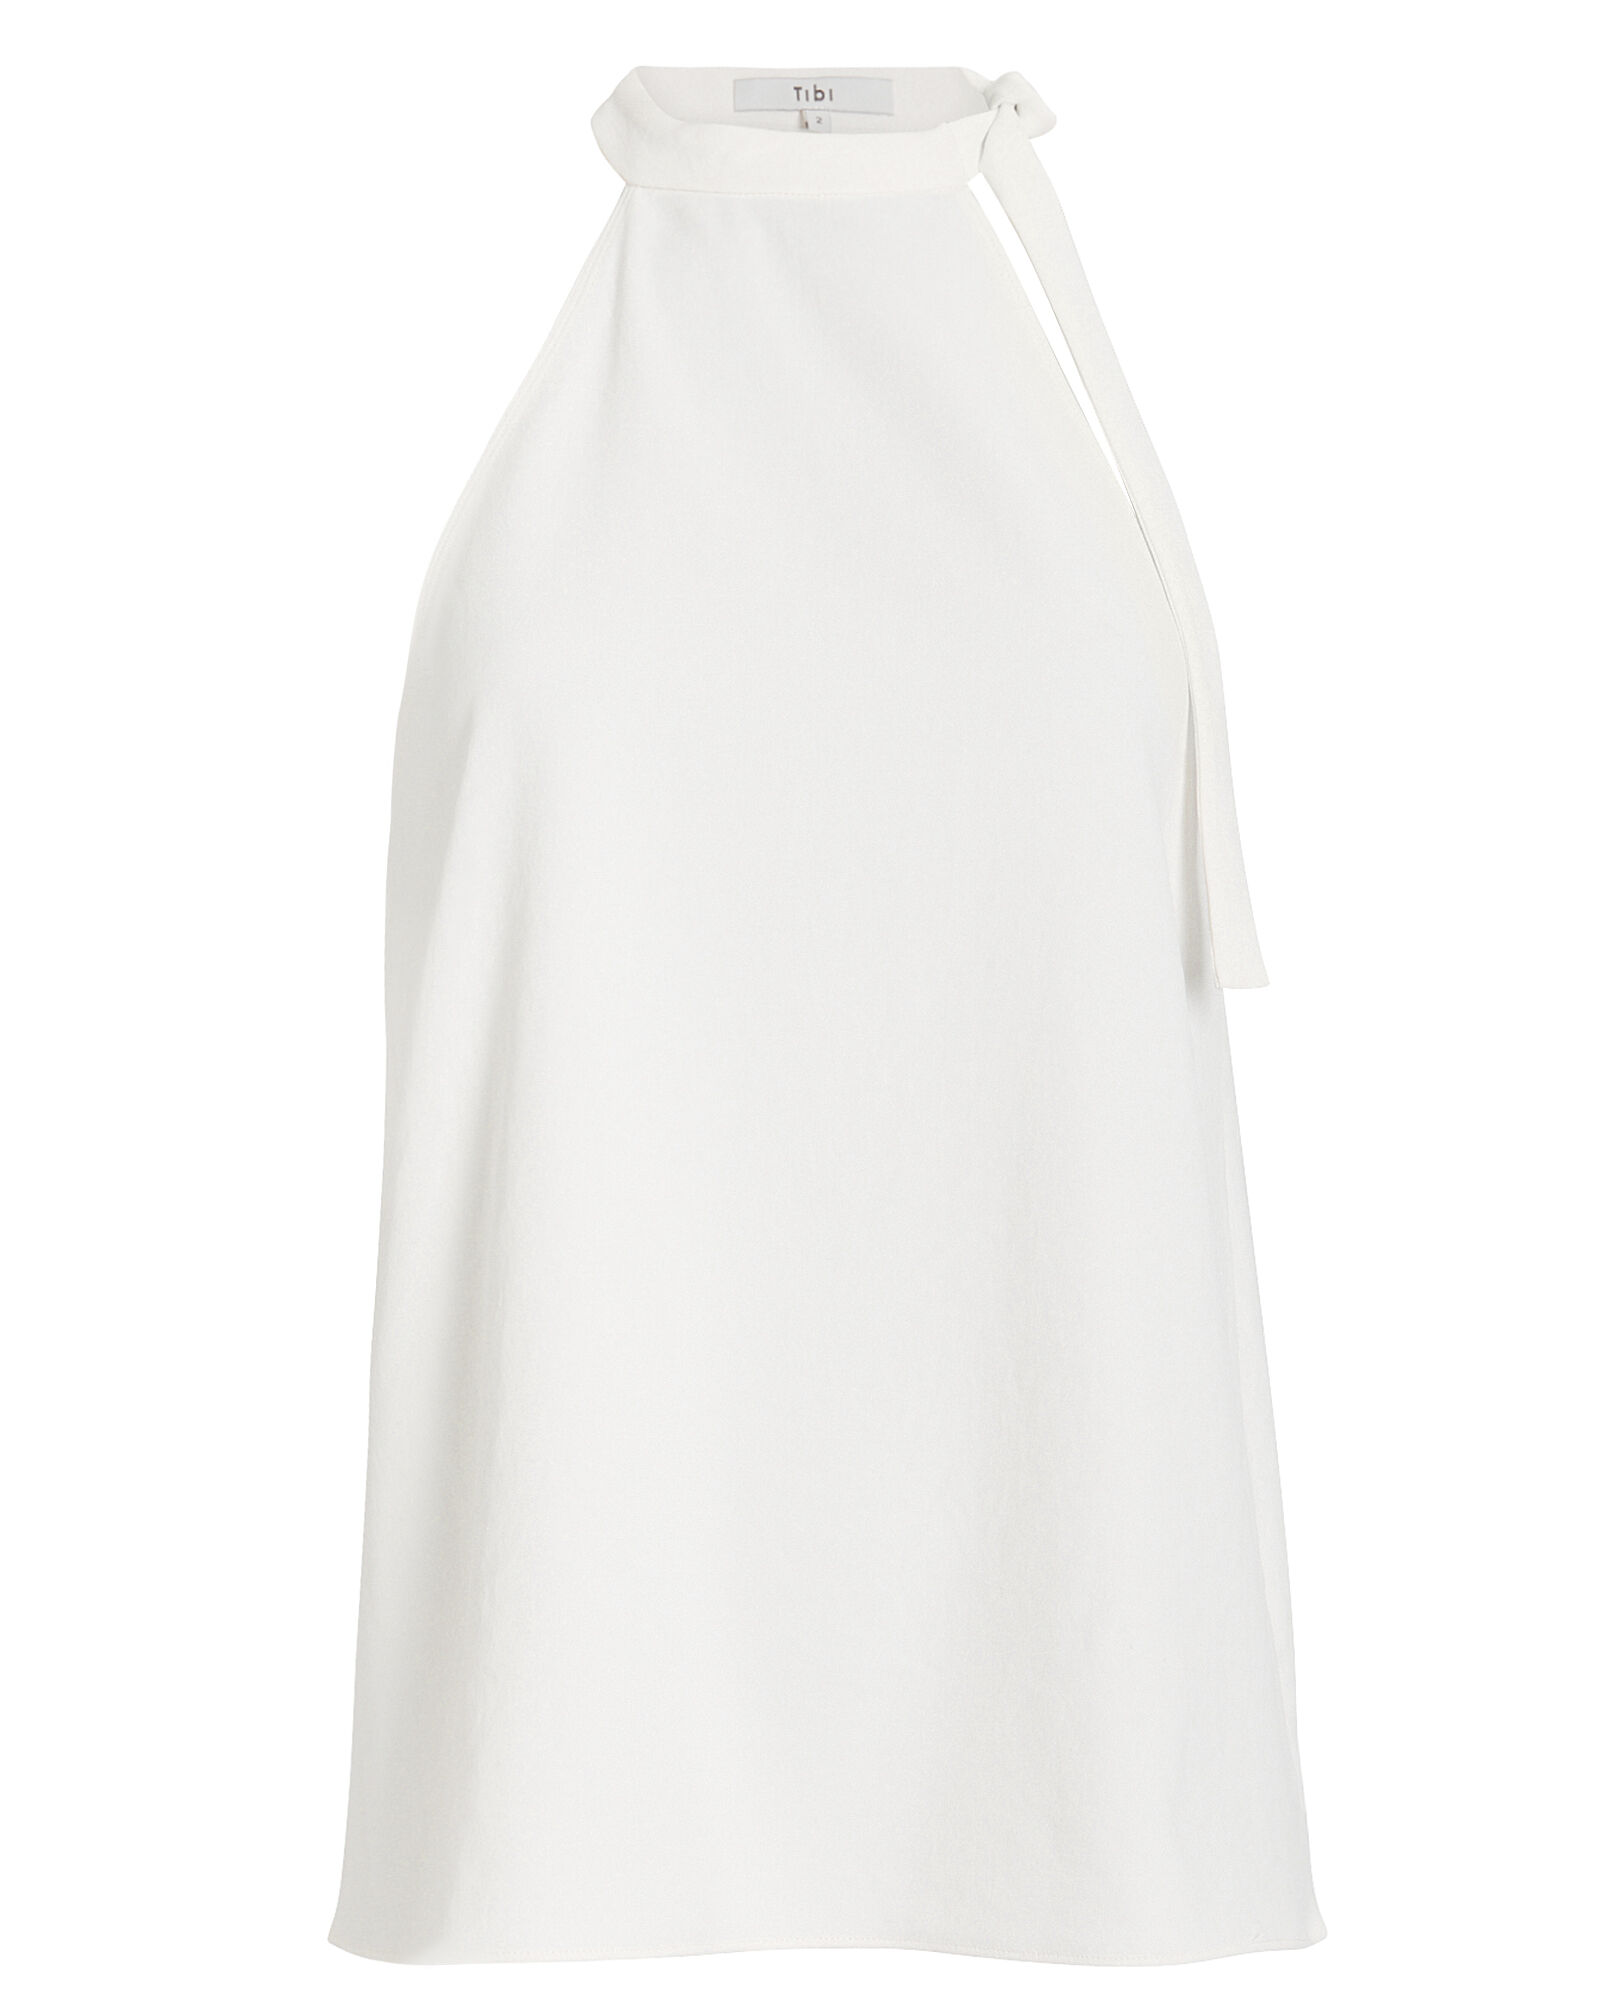 Chalky Draped Tie Neck Top, IVORY, hi-res